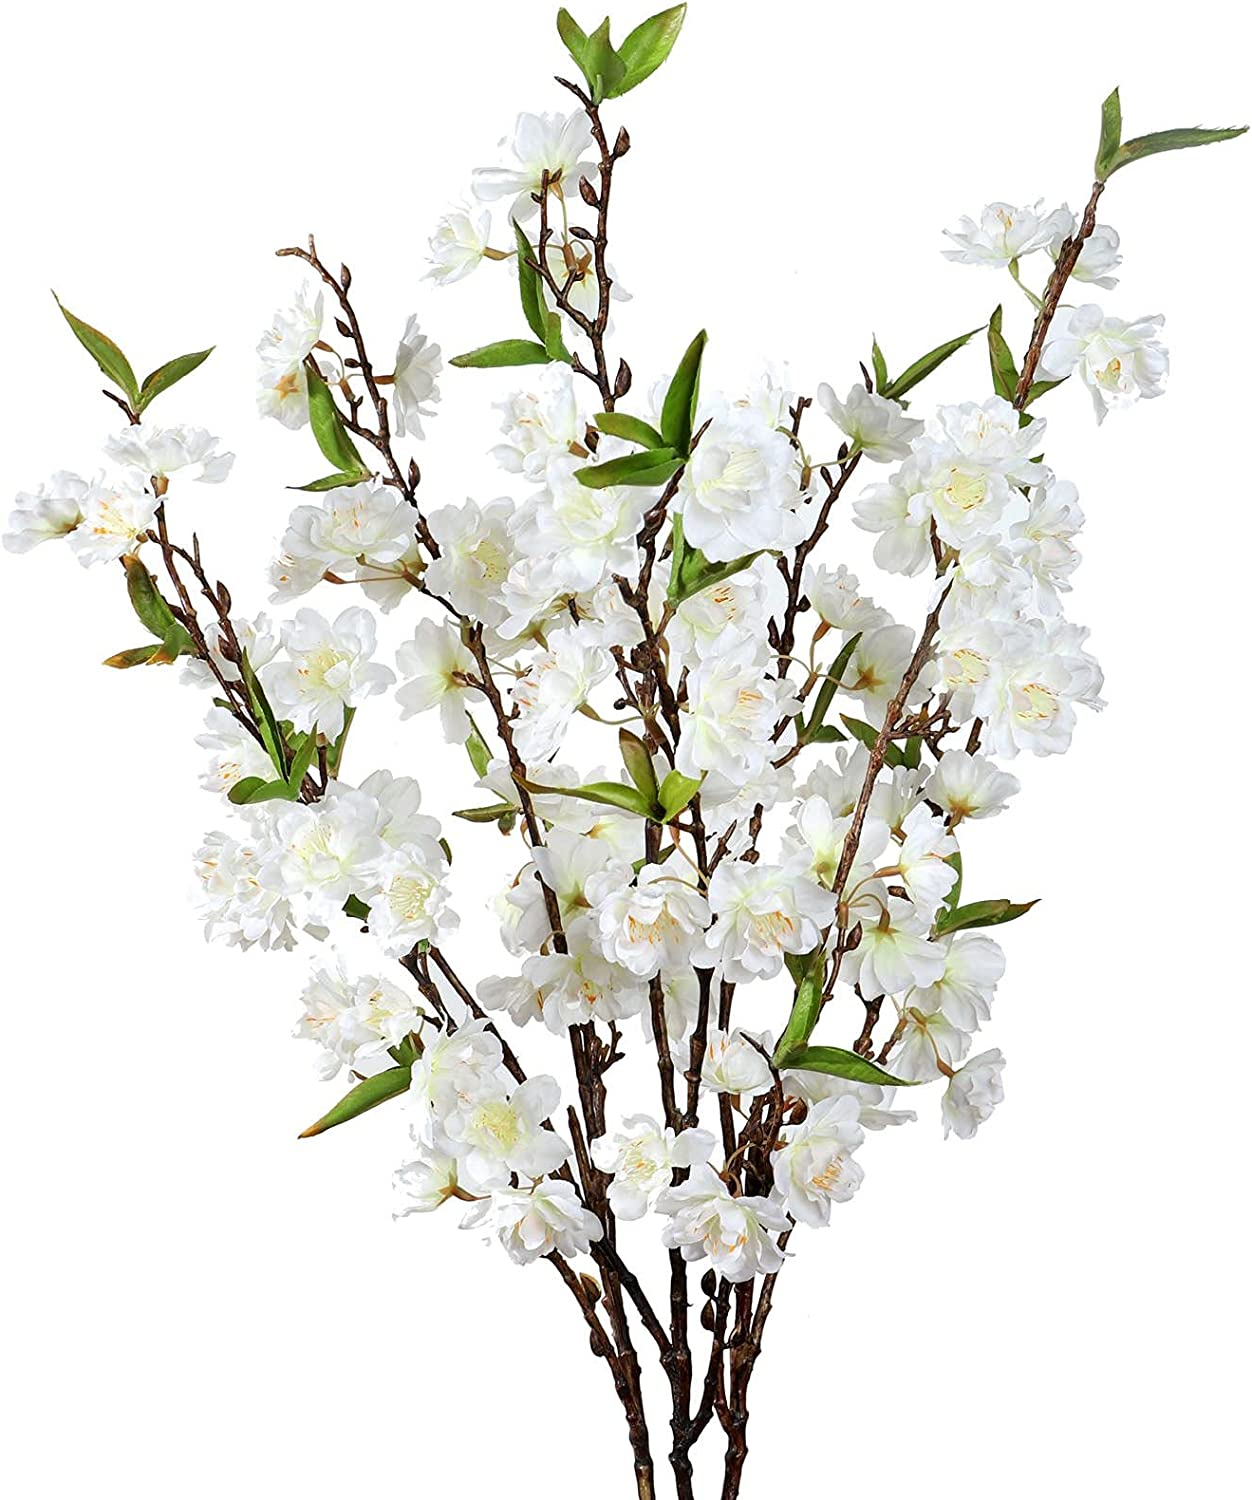 Cherry Blossom Stems Flowers Artificial - 3 Japanese Plum Branches Long Silk Petals Tall Fake Flower Tree Large Faux Centerpiece Dogwood Blossoms Vases Arrangements for Home Decor Wedding Vase - White